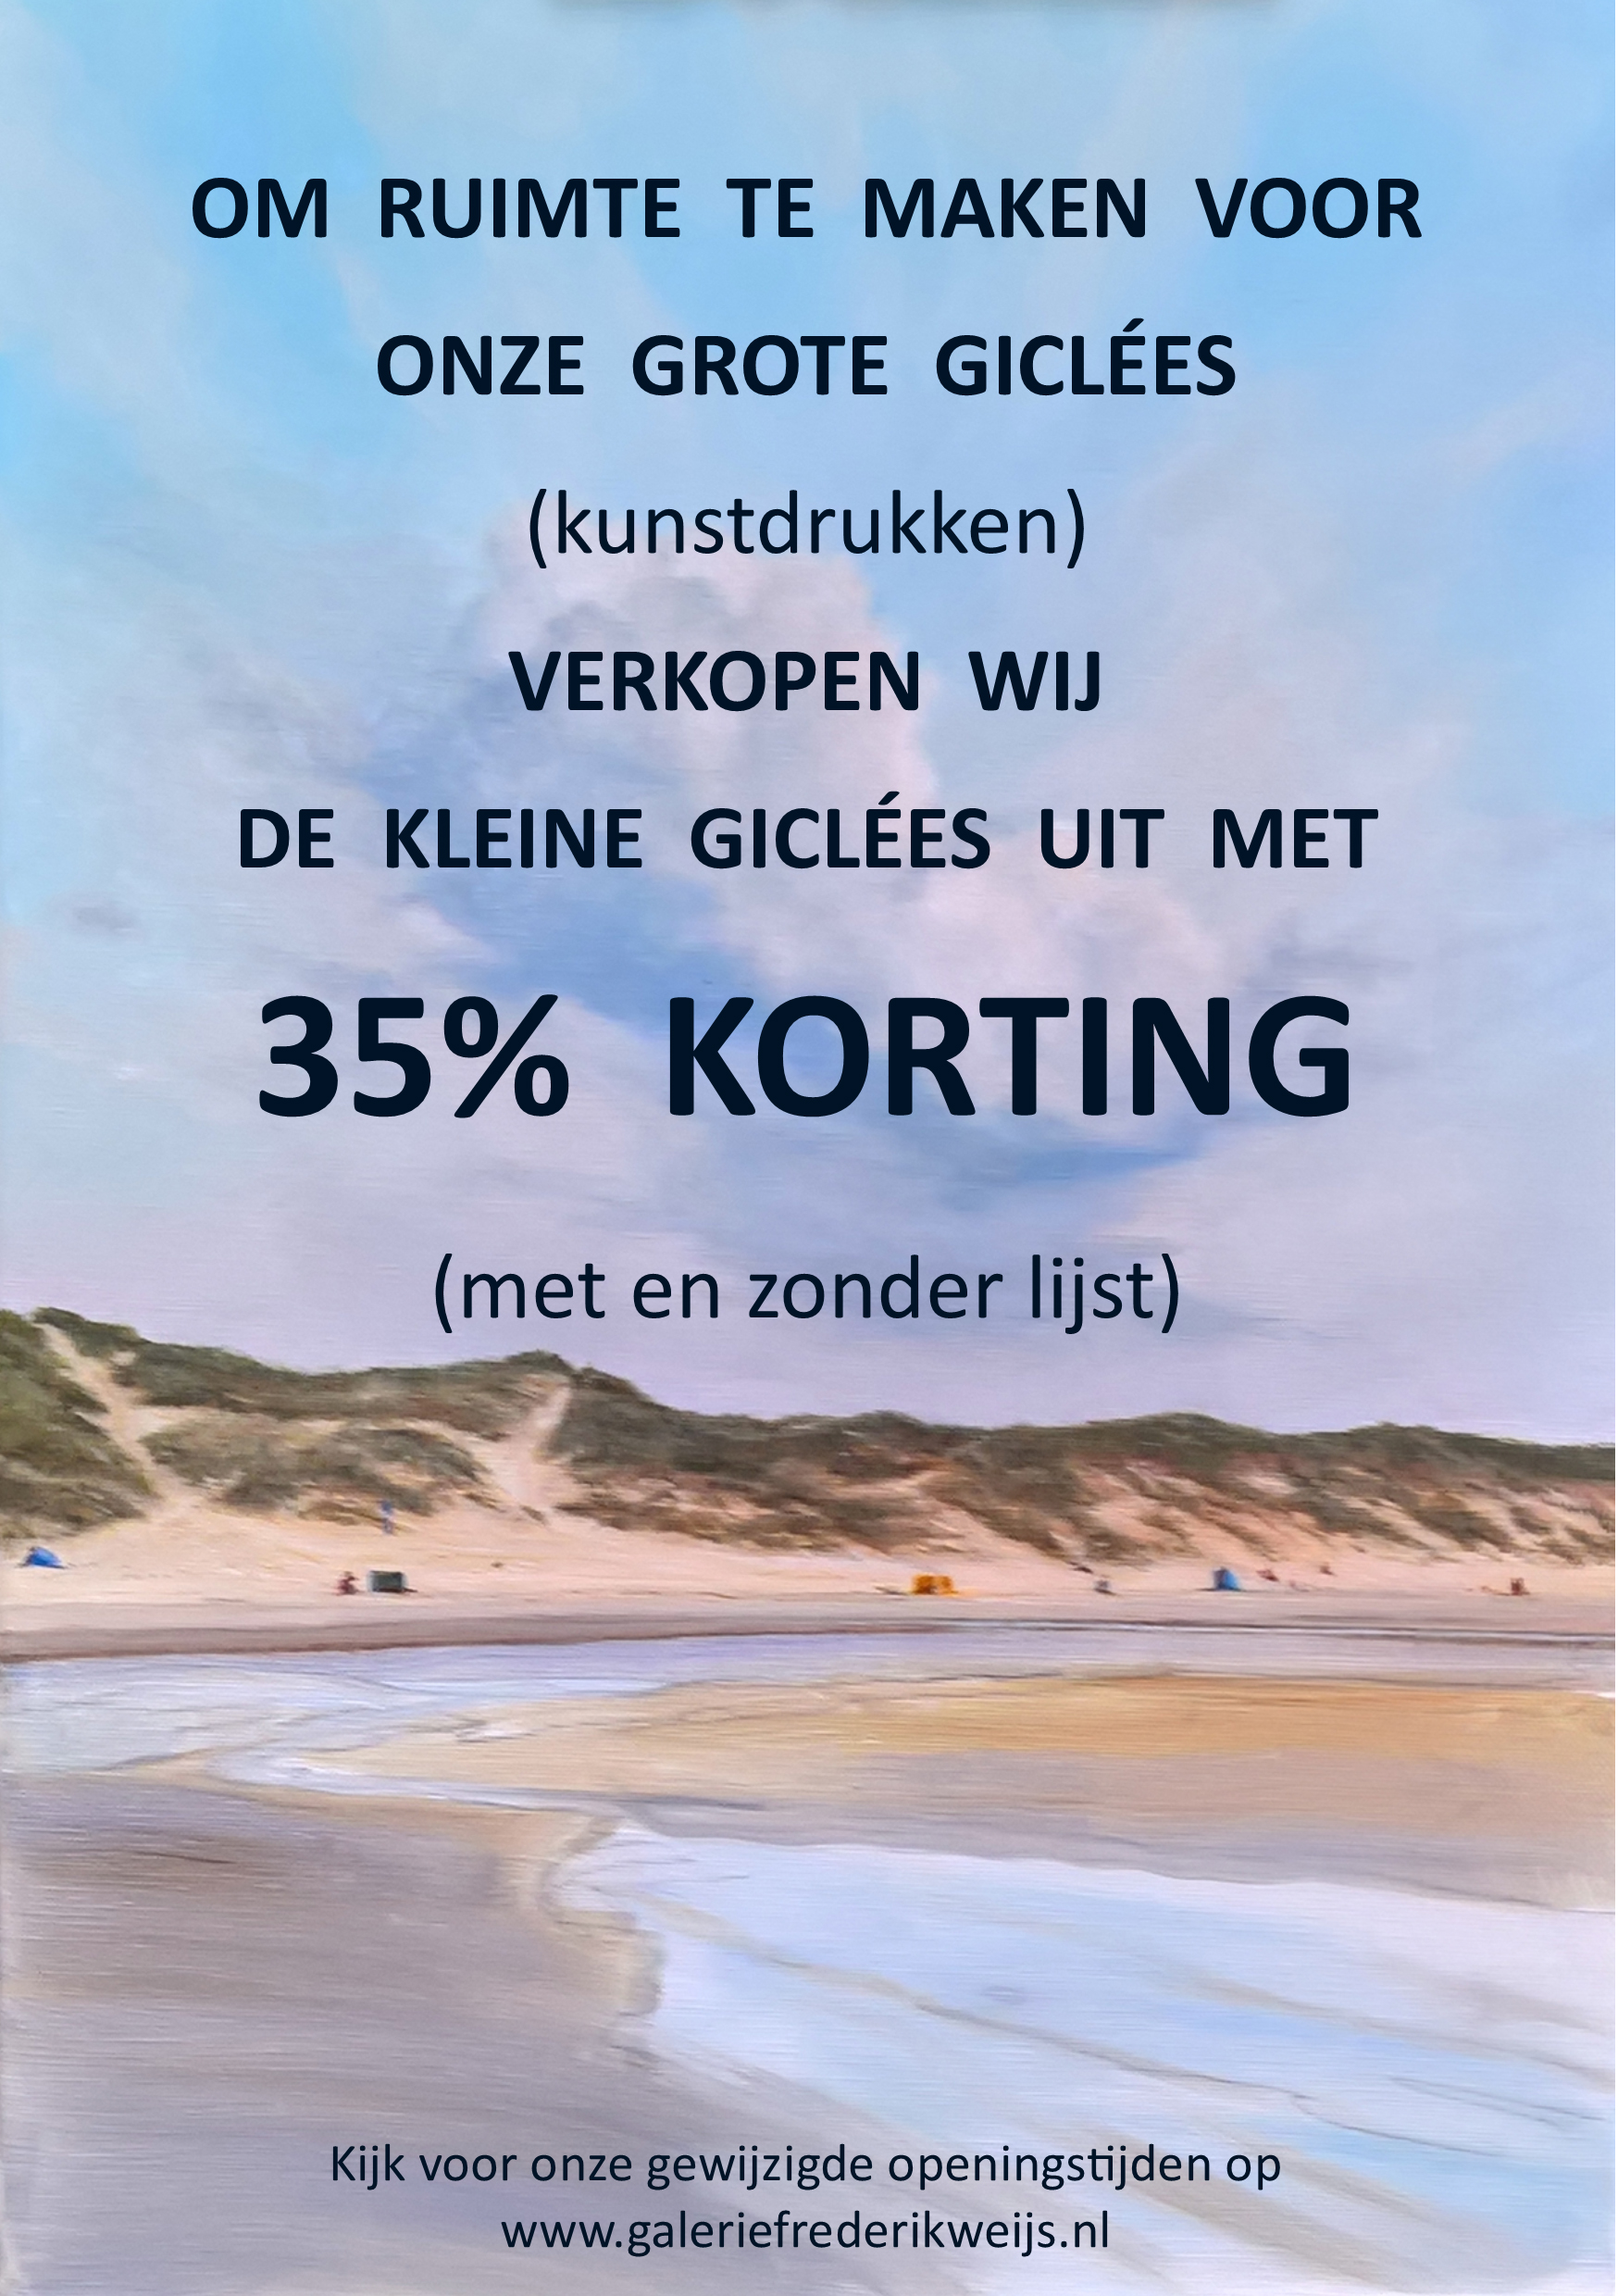 Advertentie januari 2018kopie